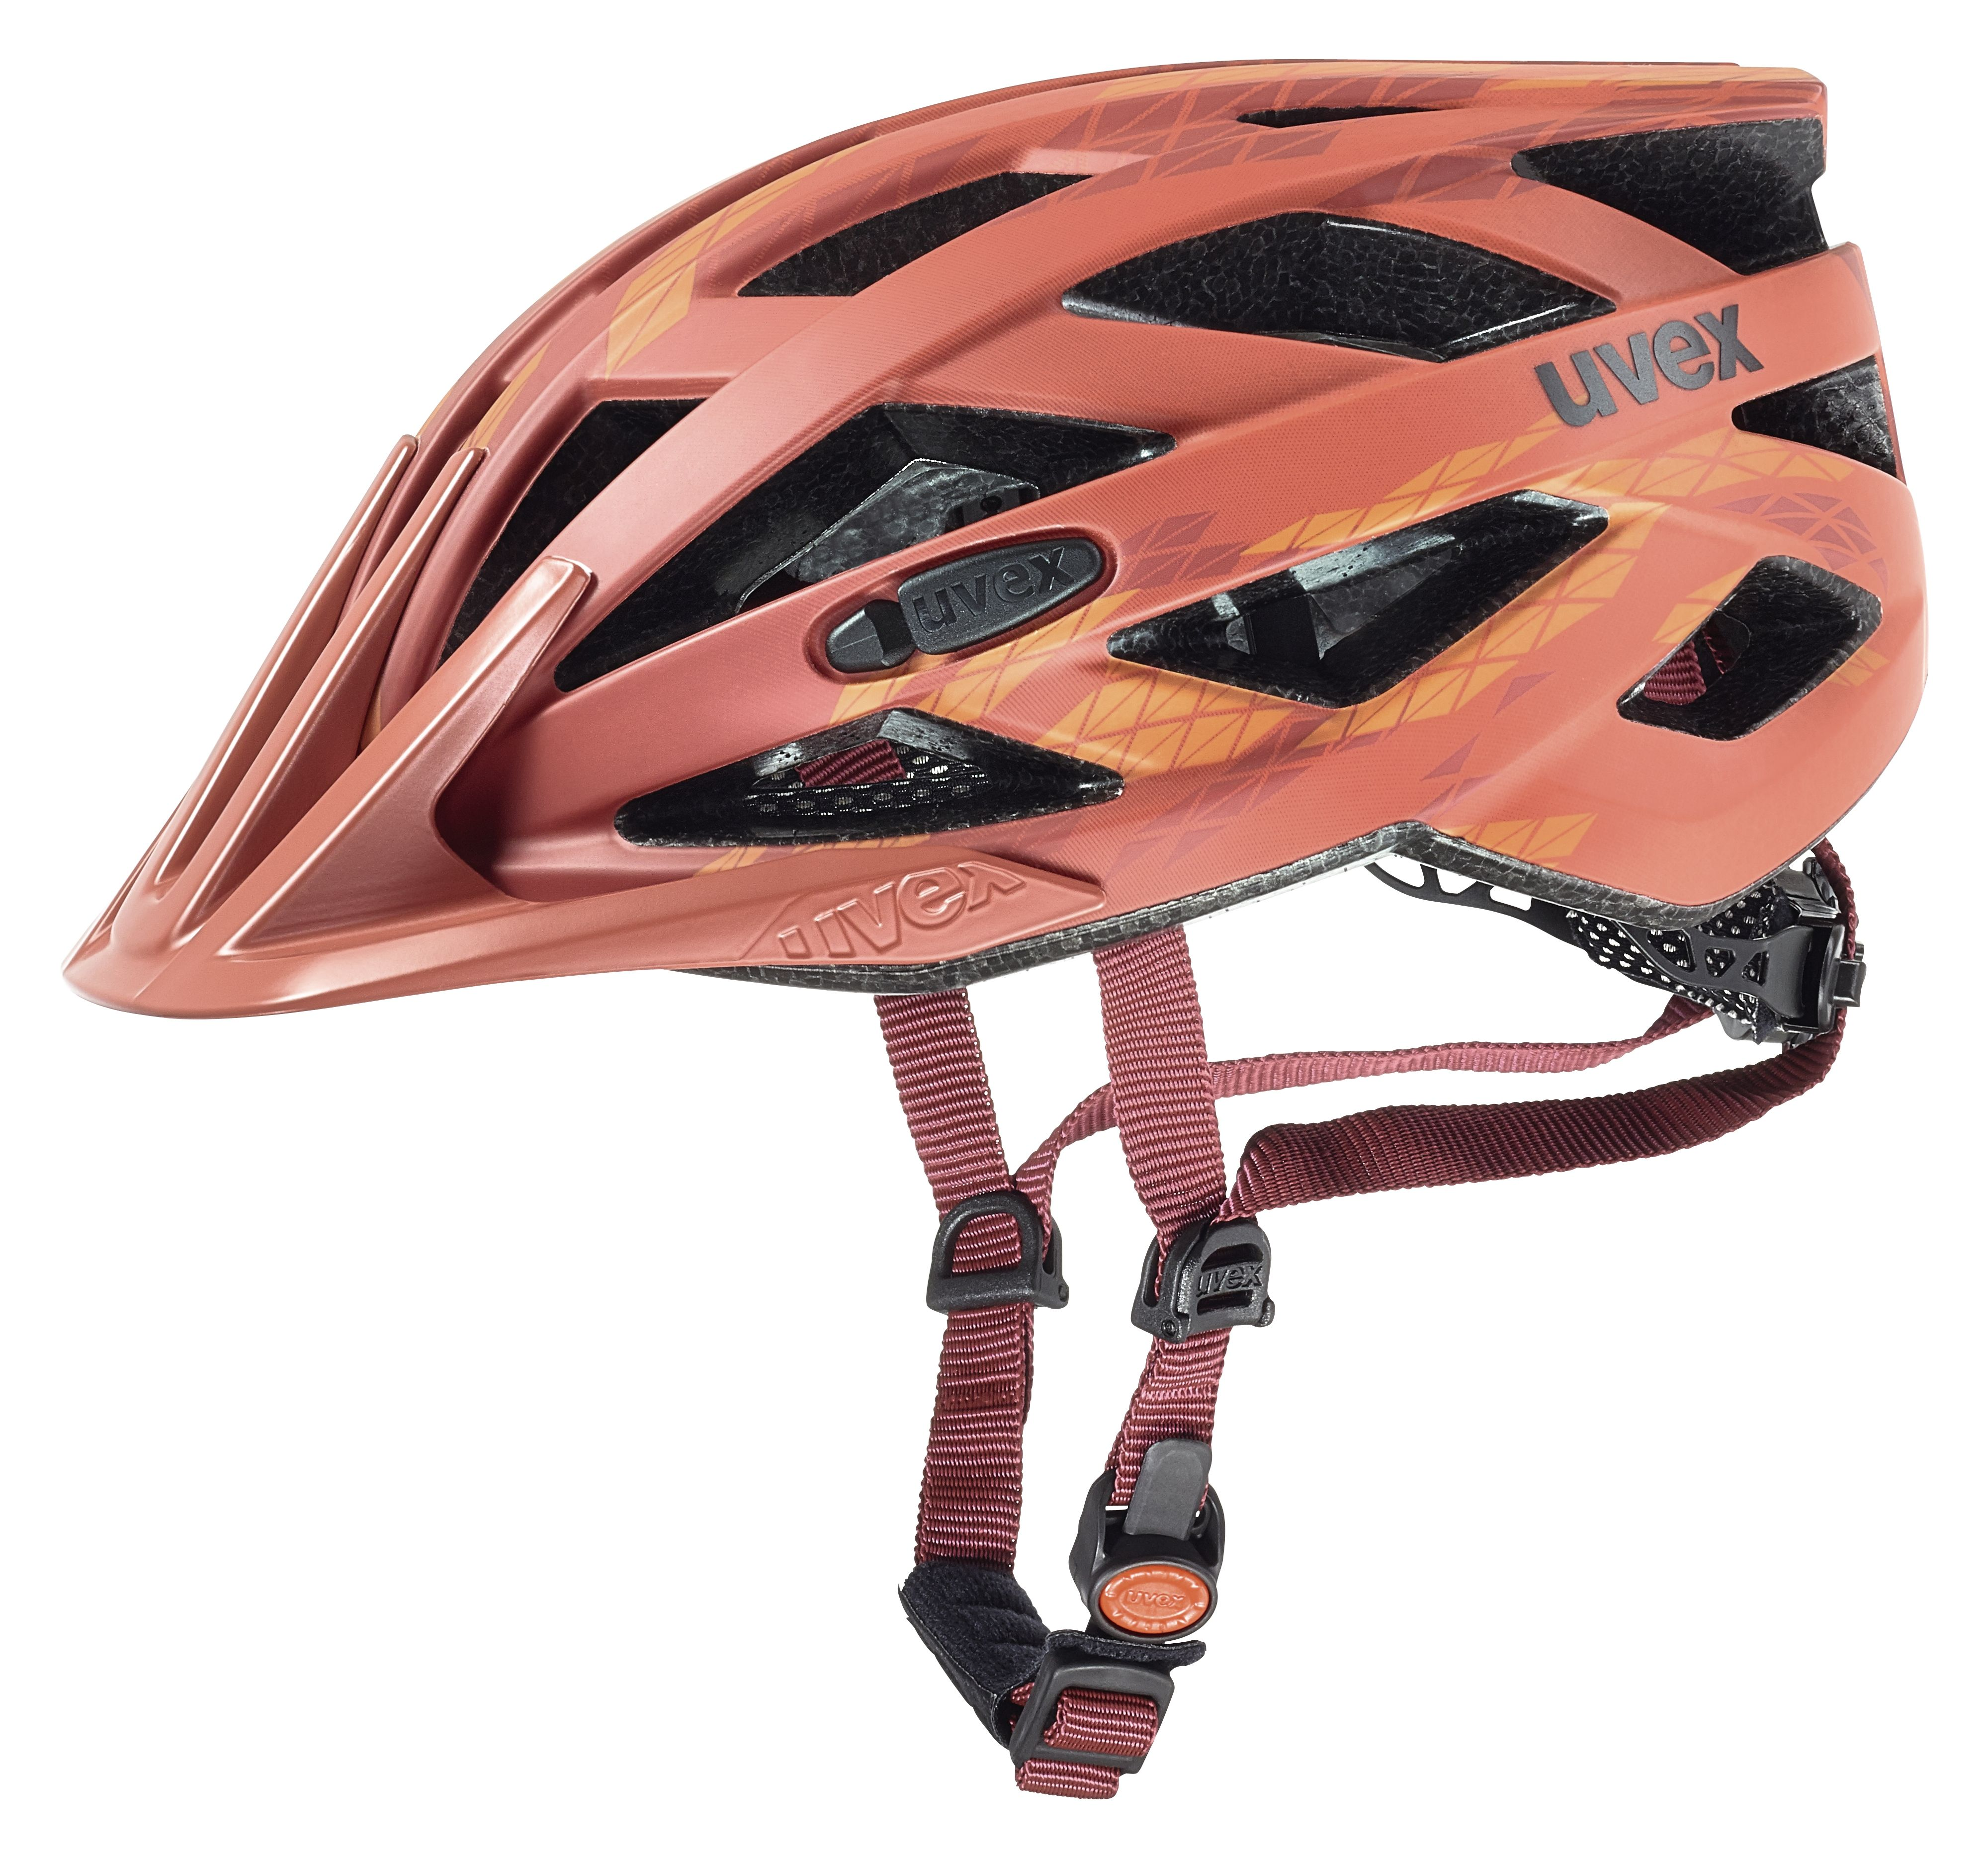 Uvex I Vo Cc A Beginner Friendly Allrounder With Outstanding Features And A Specially Designed Matt Styling The Bike Hel